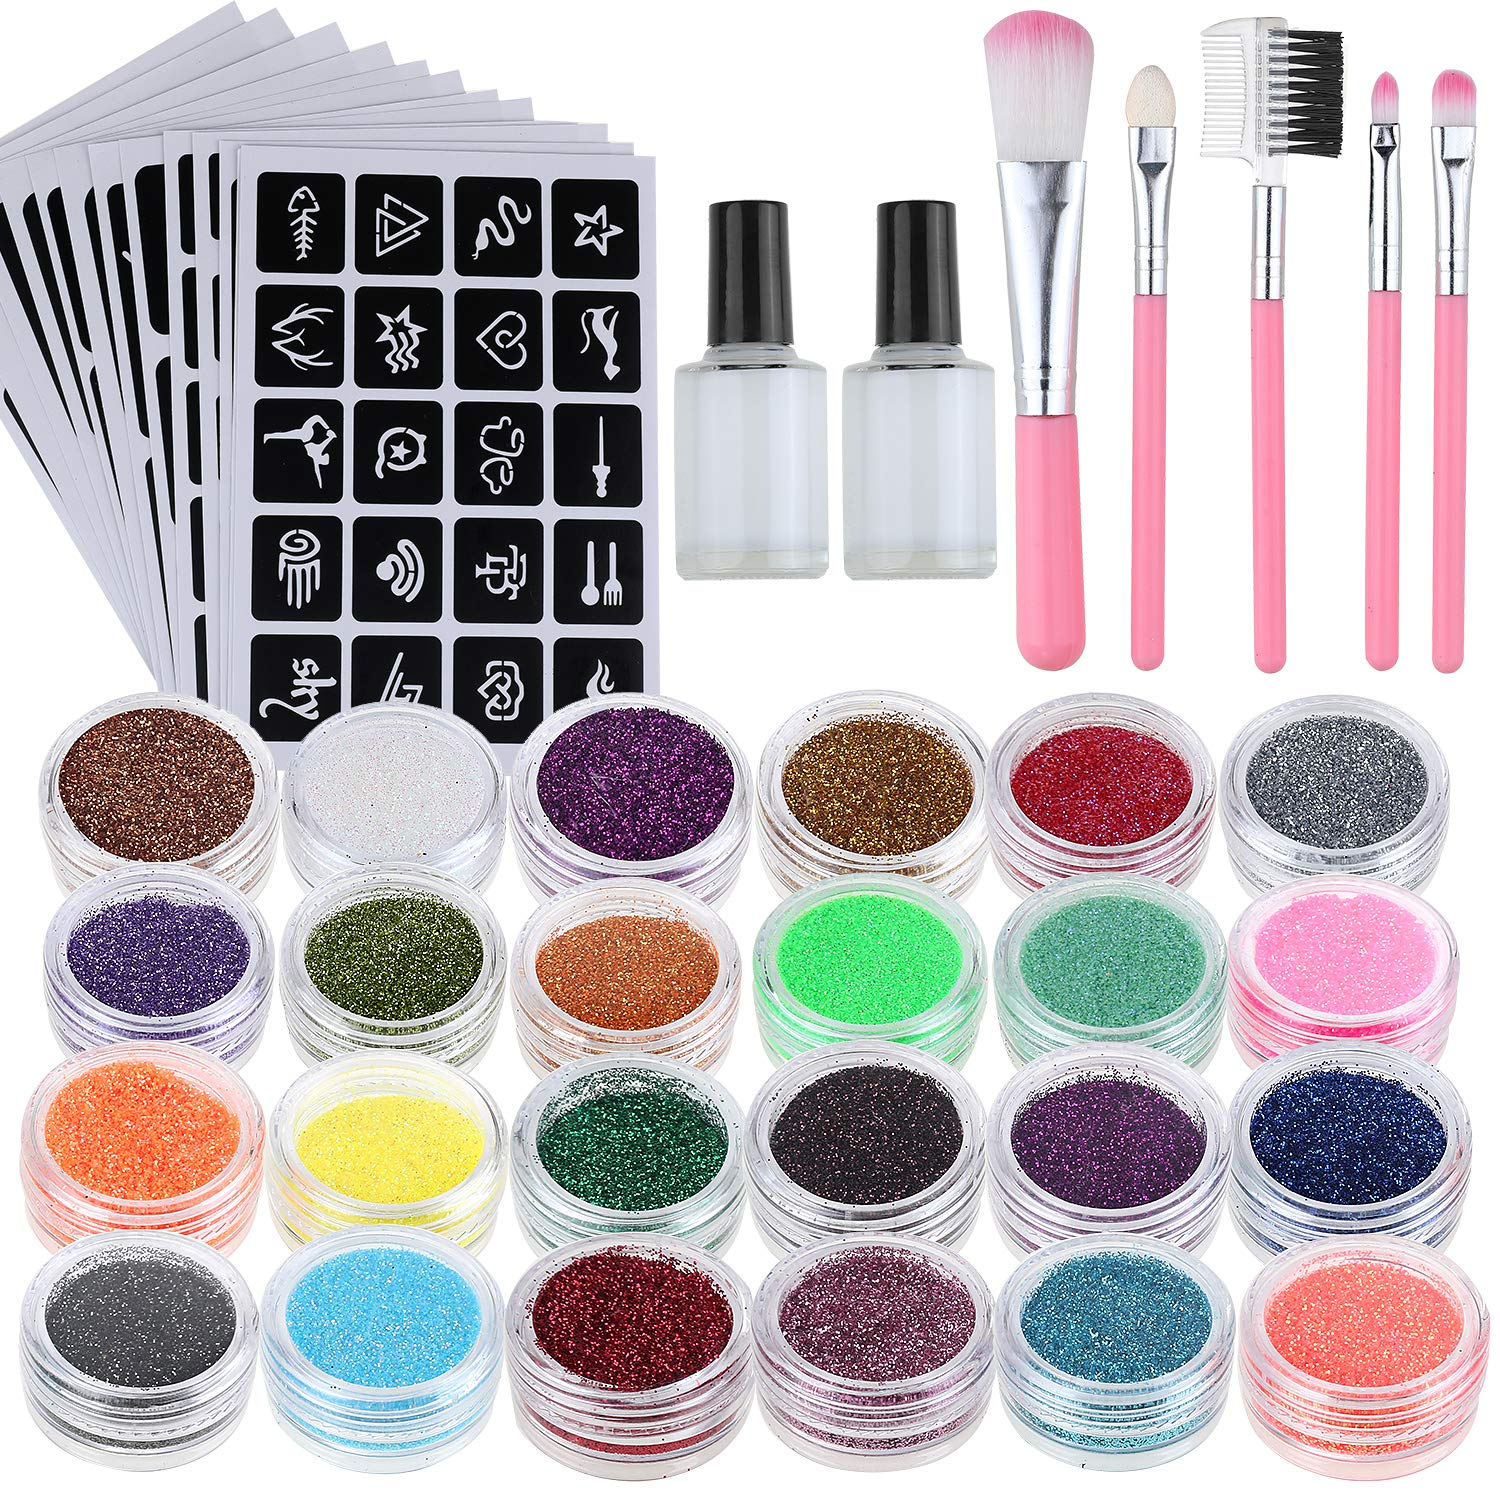 Lictin Glitzer Tattoo Halloween Glitzer Tattoo Neues Glitzer Tattoo Set